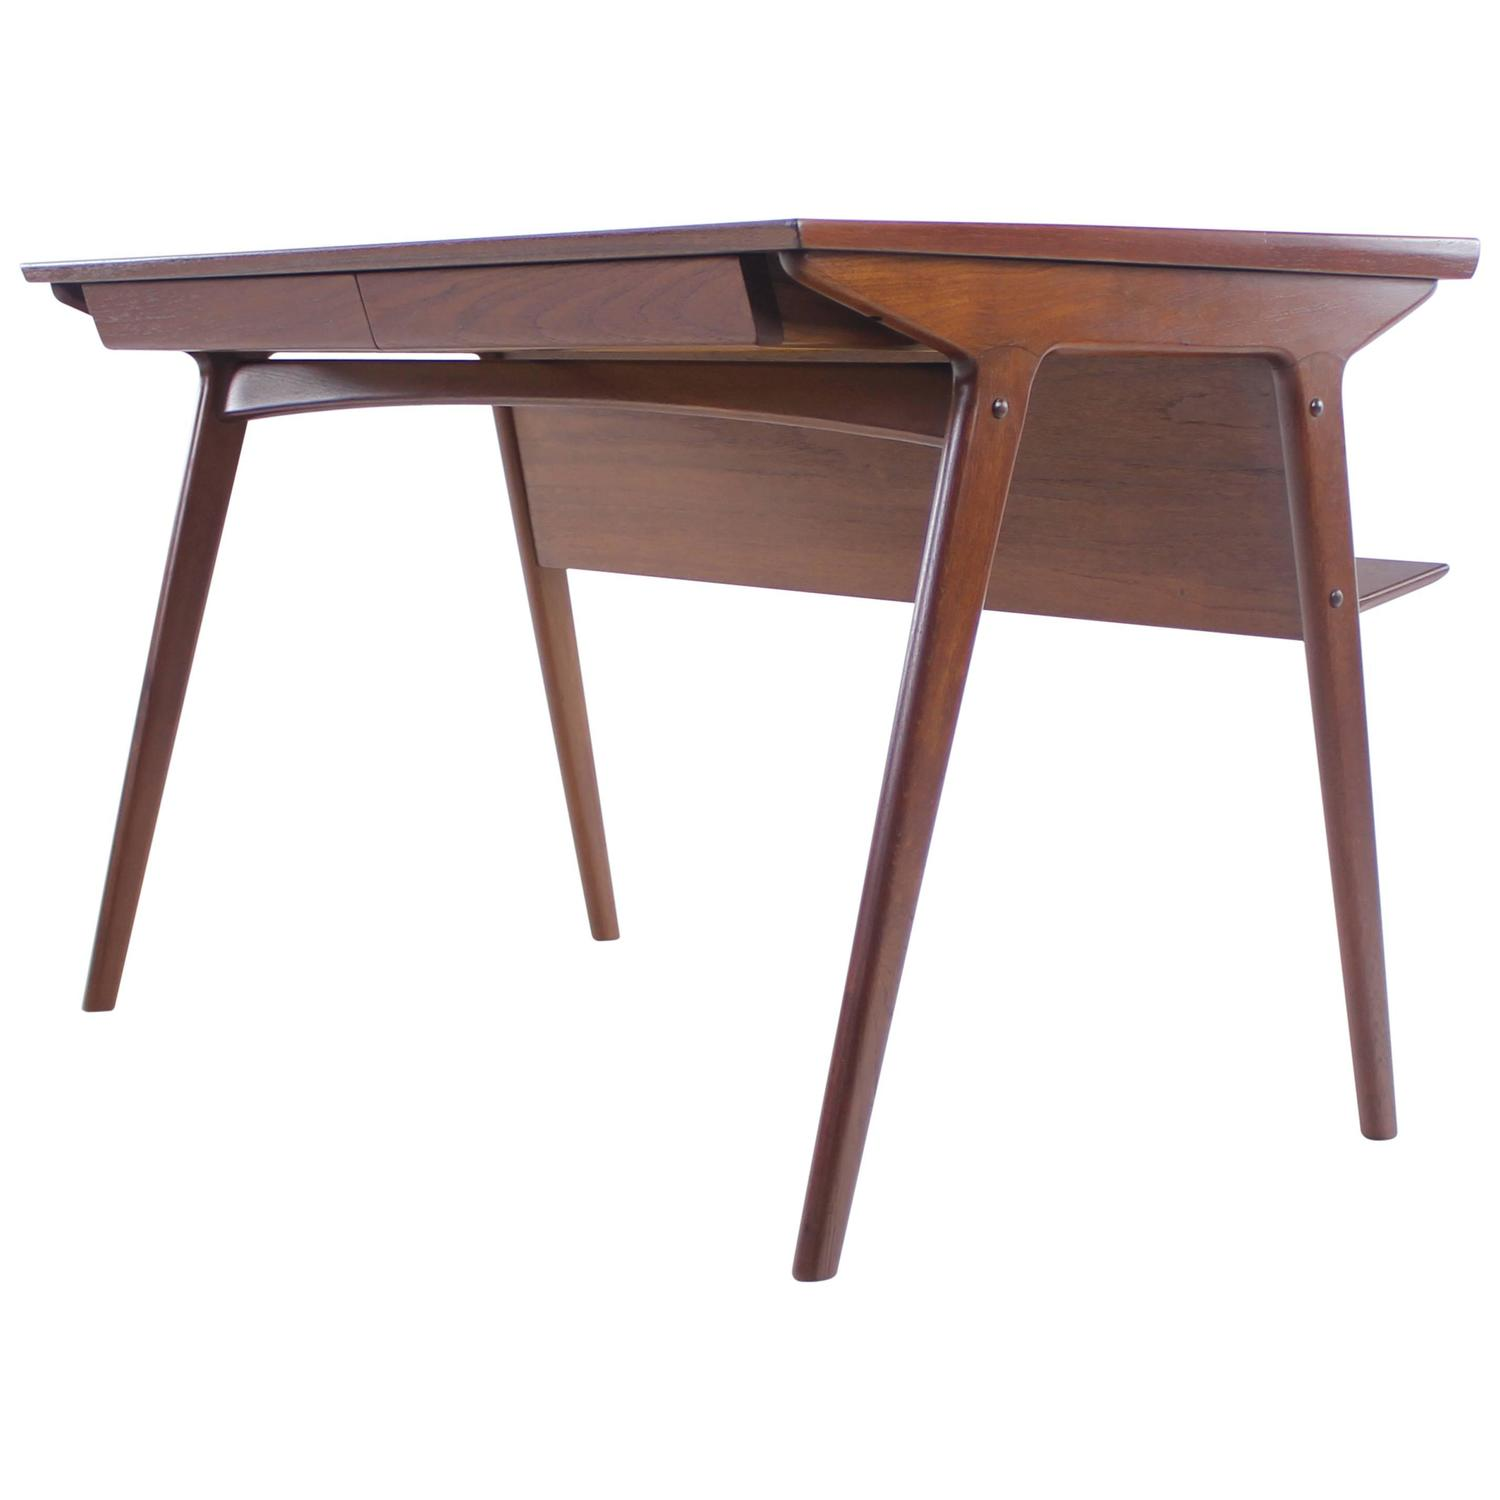 Sleek And Stylish Danish Modern Teak Desk Designed By Harry Ostergaard